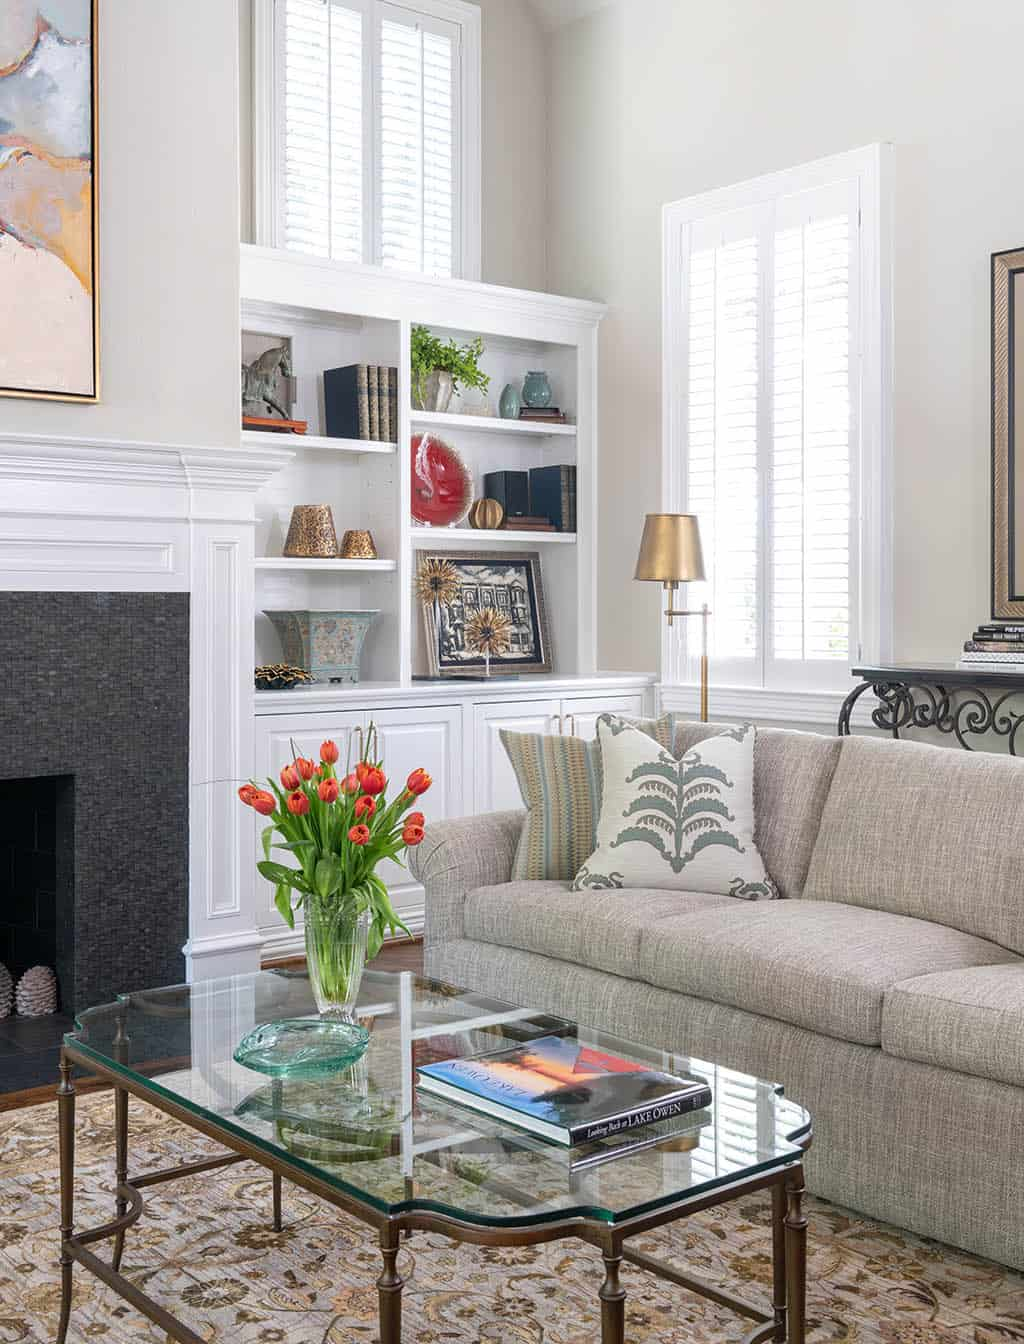 Coffee table decorated with books and other accessories in Plano, TX